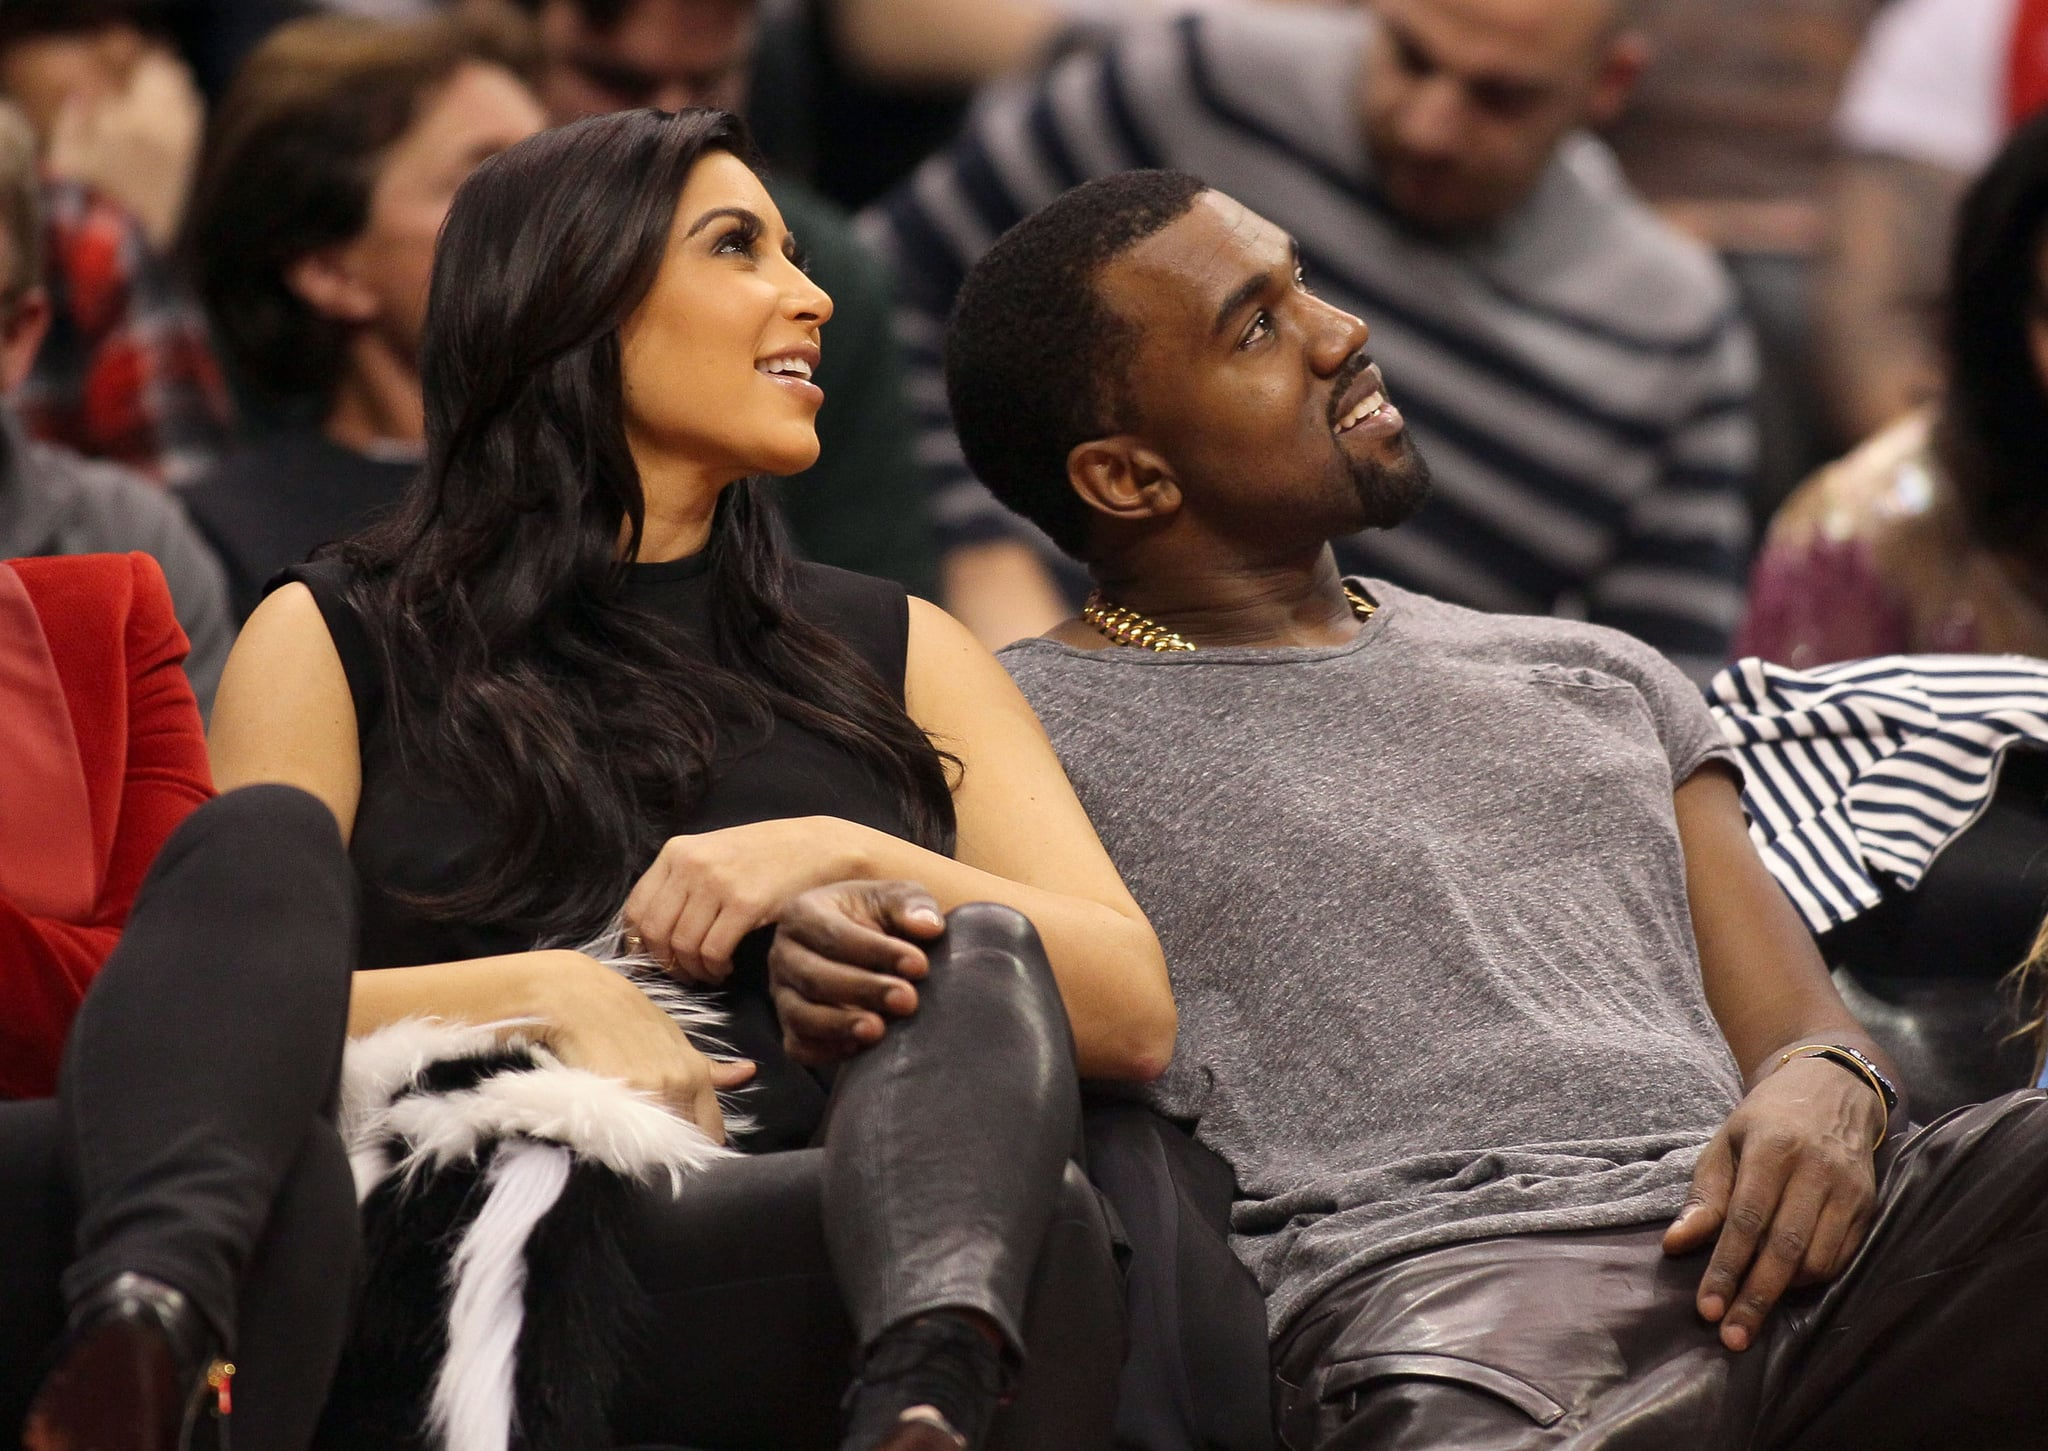 The couple was cuddled up courtside at a December 2012 Clippers game in LA.